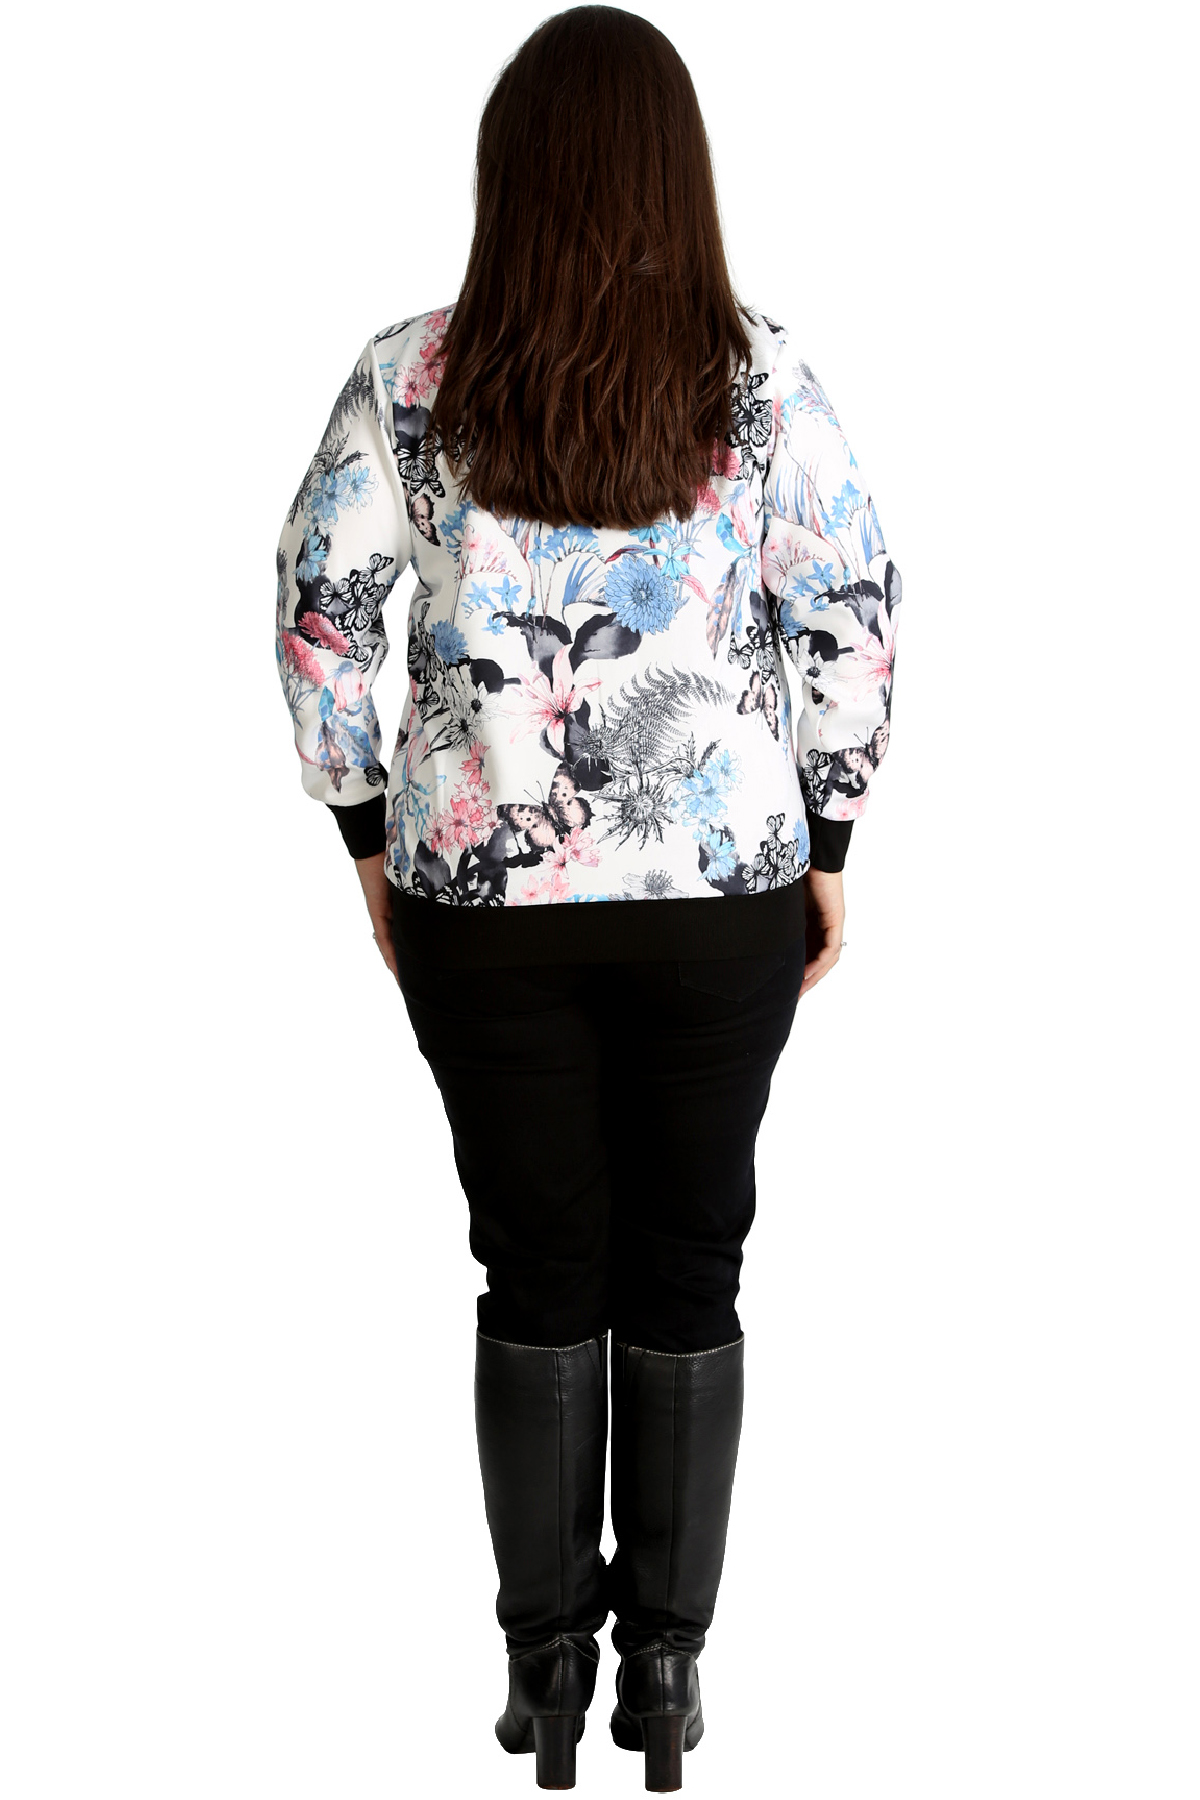 New-Womens-Bomber-Jacket-Plus-Size-Ladies-Butterfly-Floral-Print-Ribbed-Style